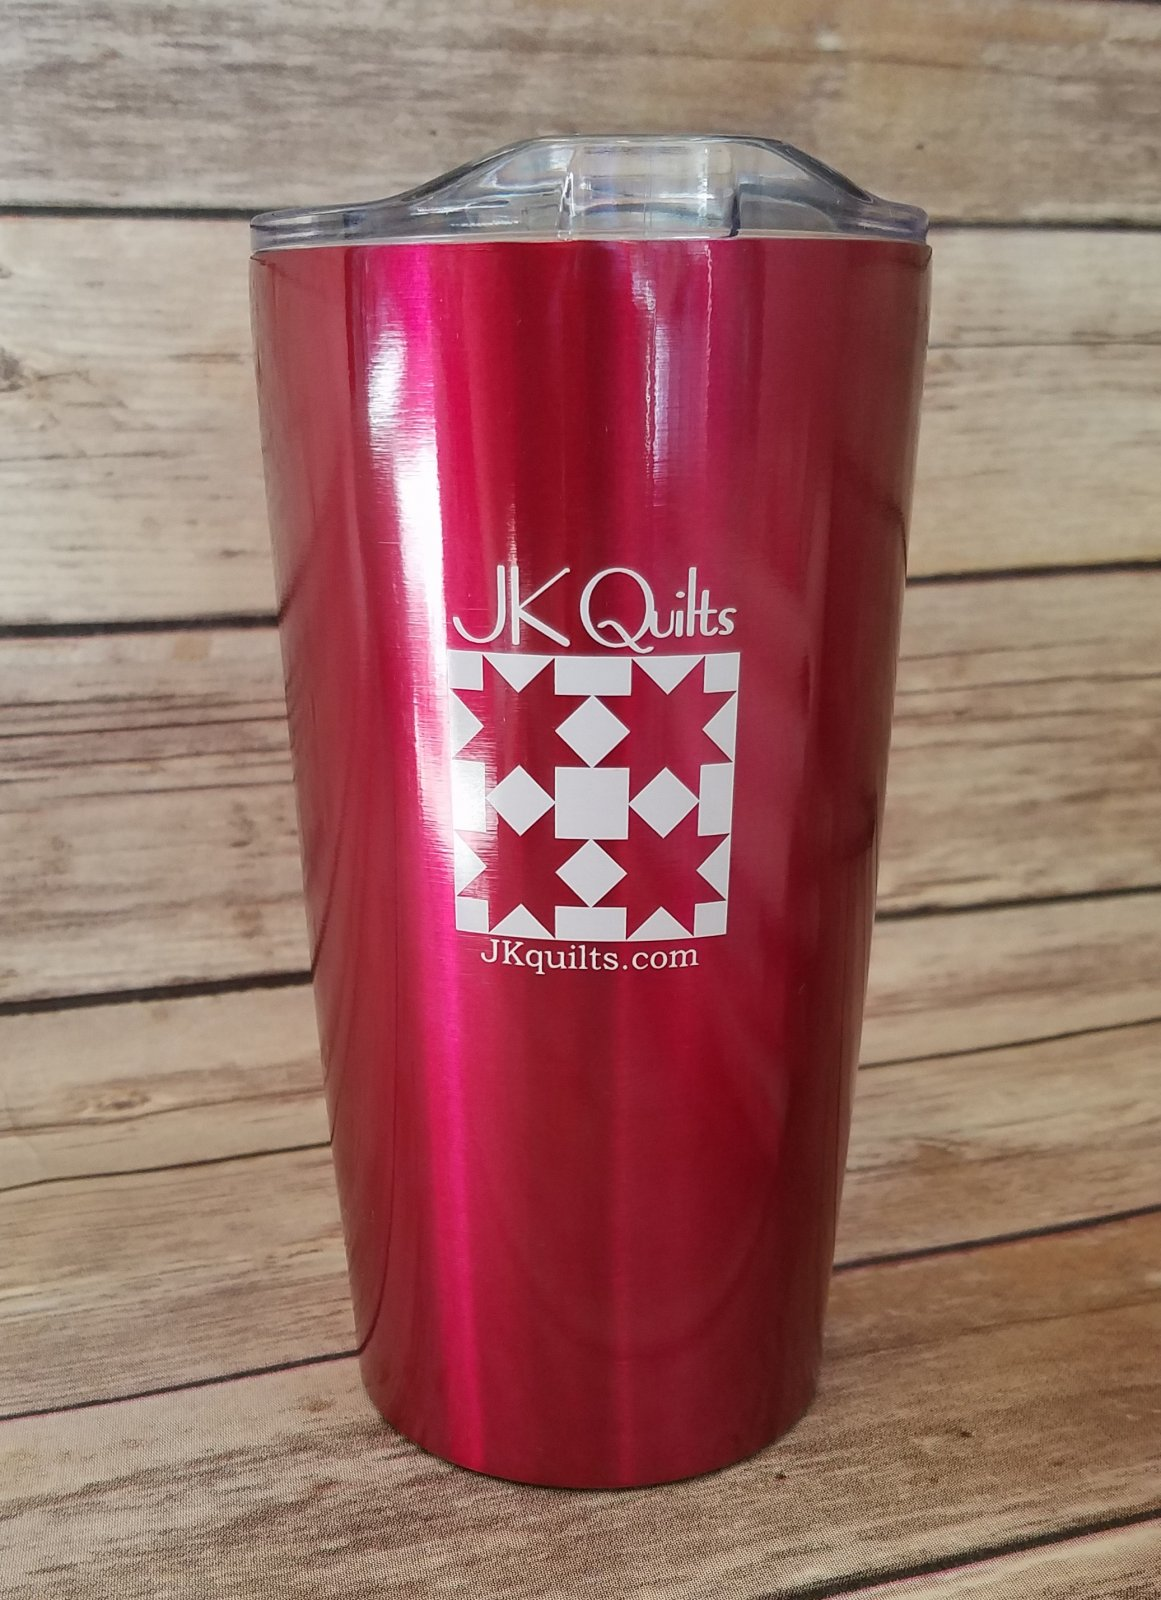 JK Quilts 20 oz. Tumbler